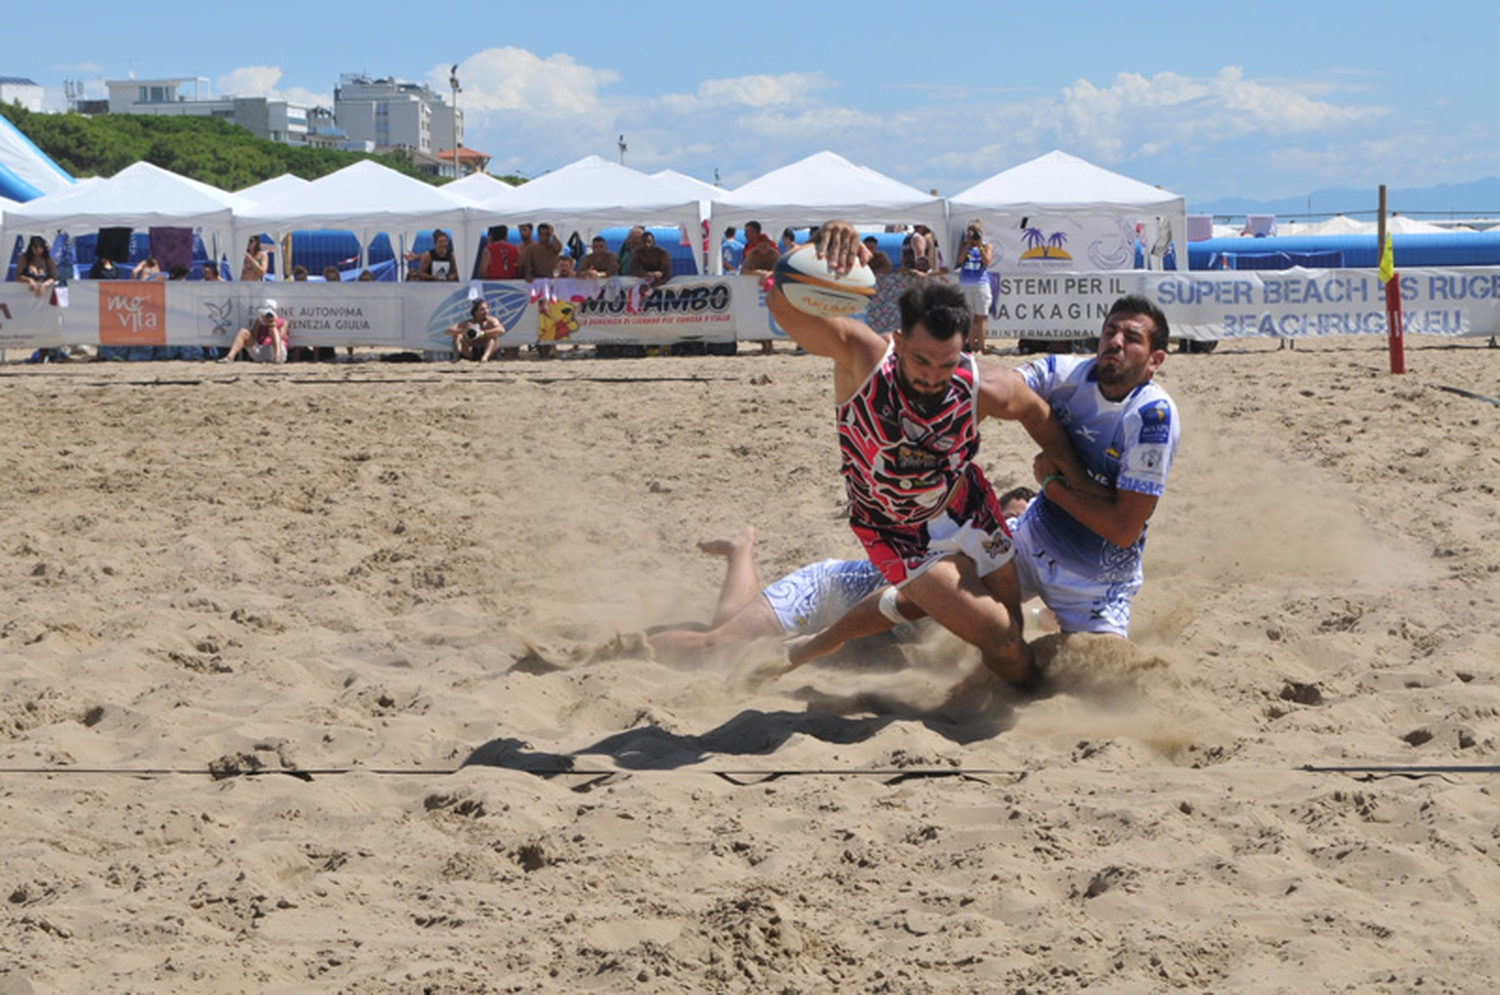 Foto di Super Beach 5's Rugby 2018